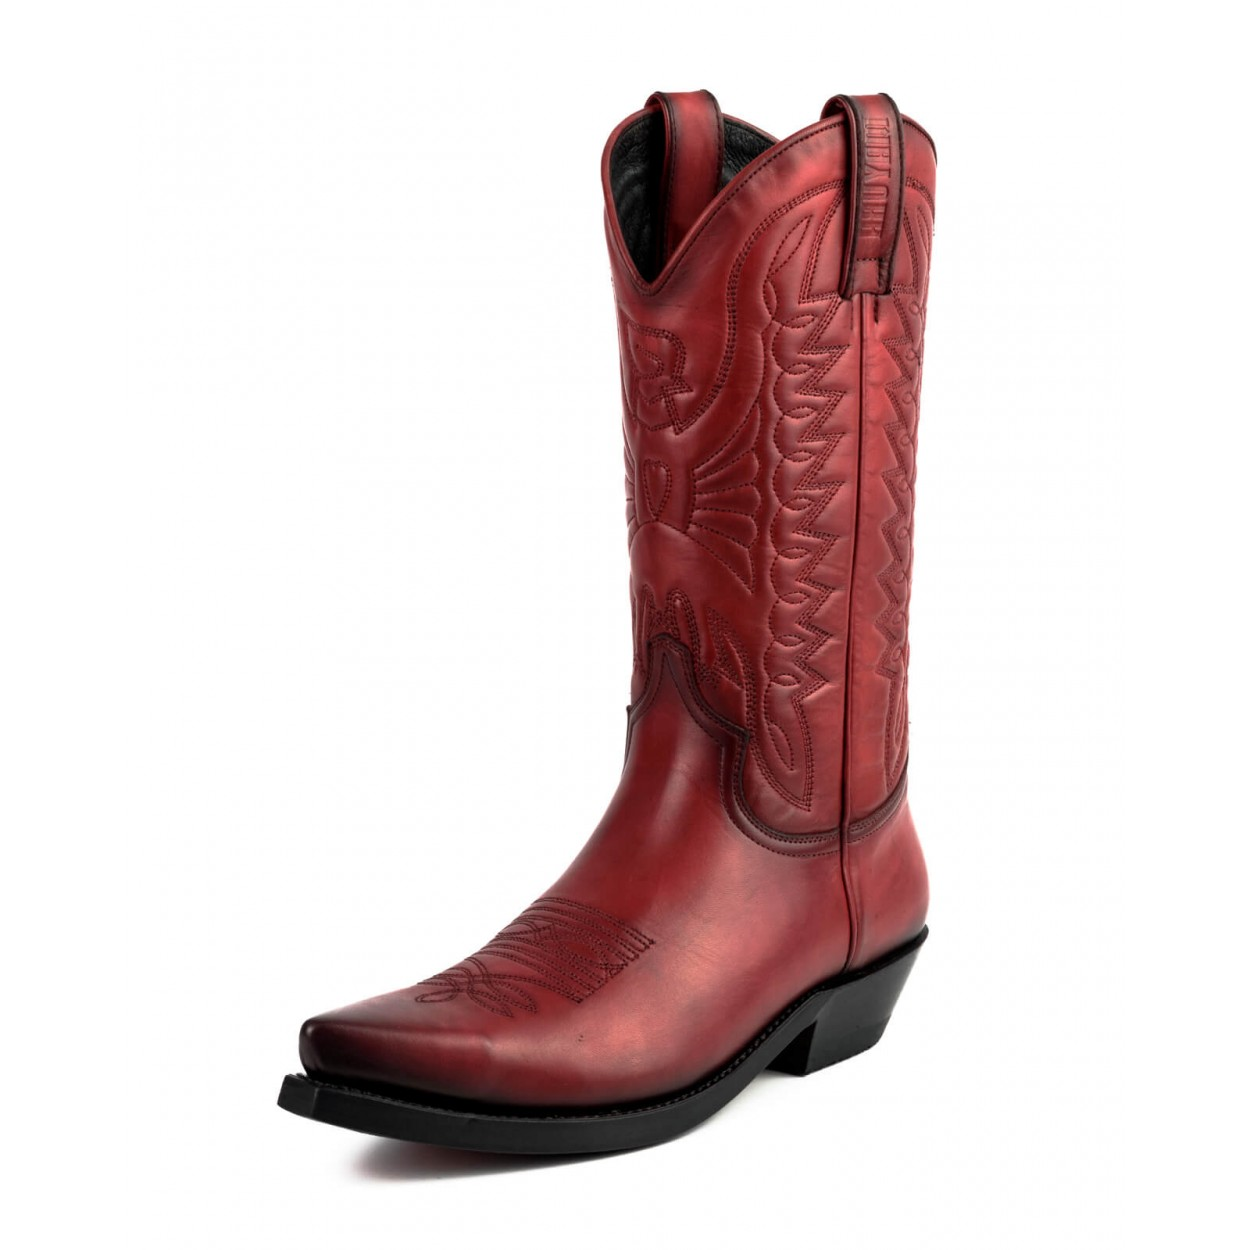 winter-fashion-british-men-top-quality-pu-leather-slip-on-boots-breathable-chelsea-boots-male-casual-zapatos-de-hombre-f529